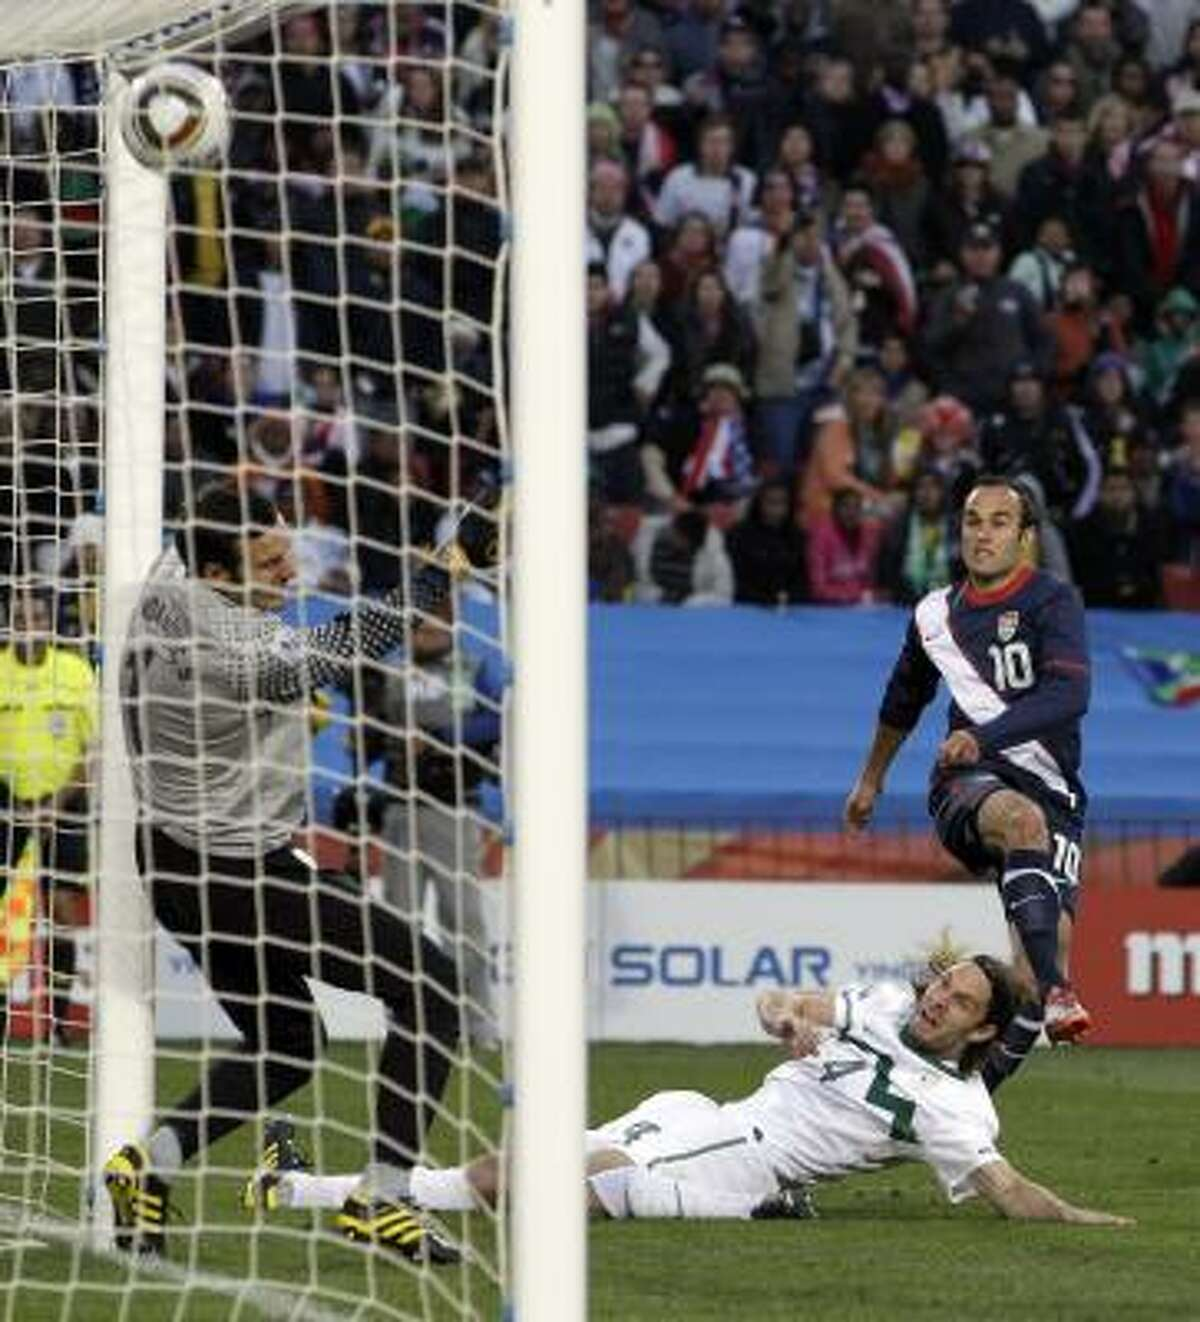 Landon Donovan, top right, scores three minutes into the second half to get the U.S. on the board.